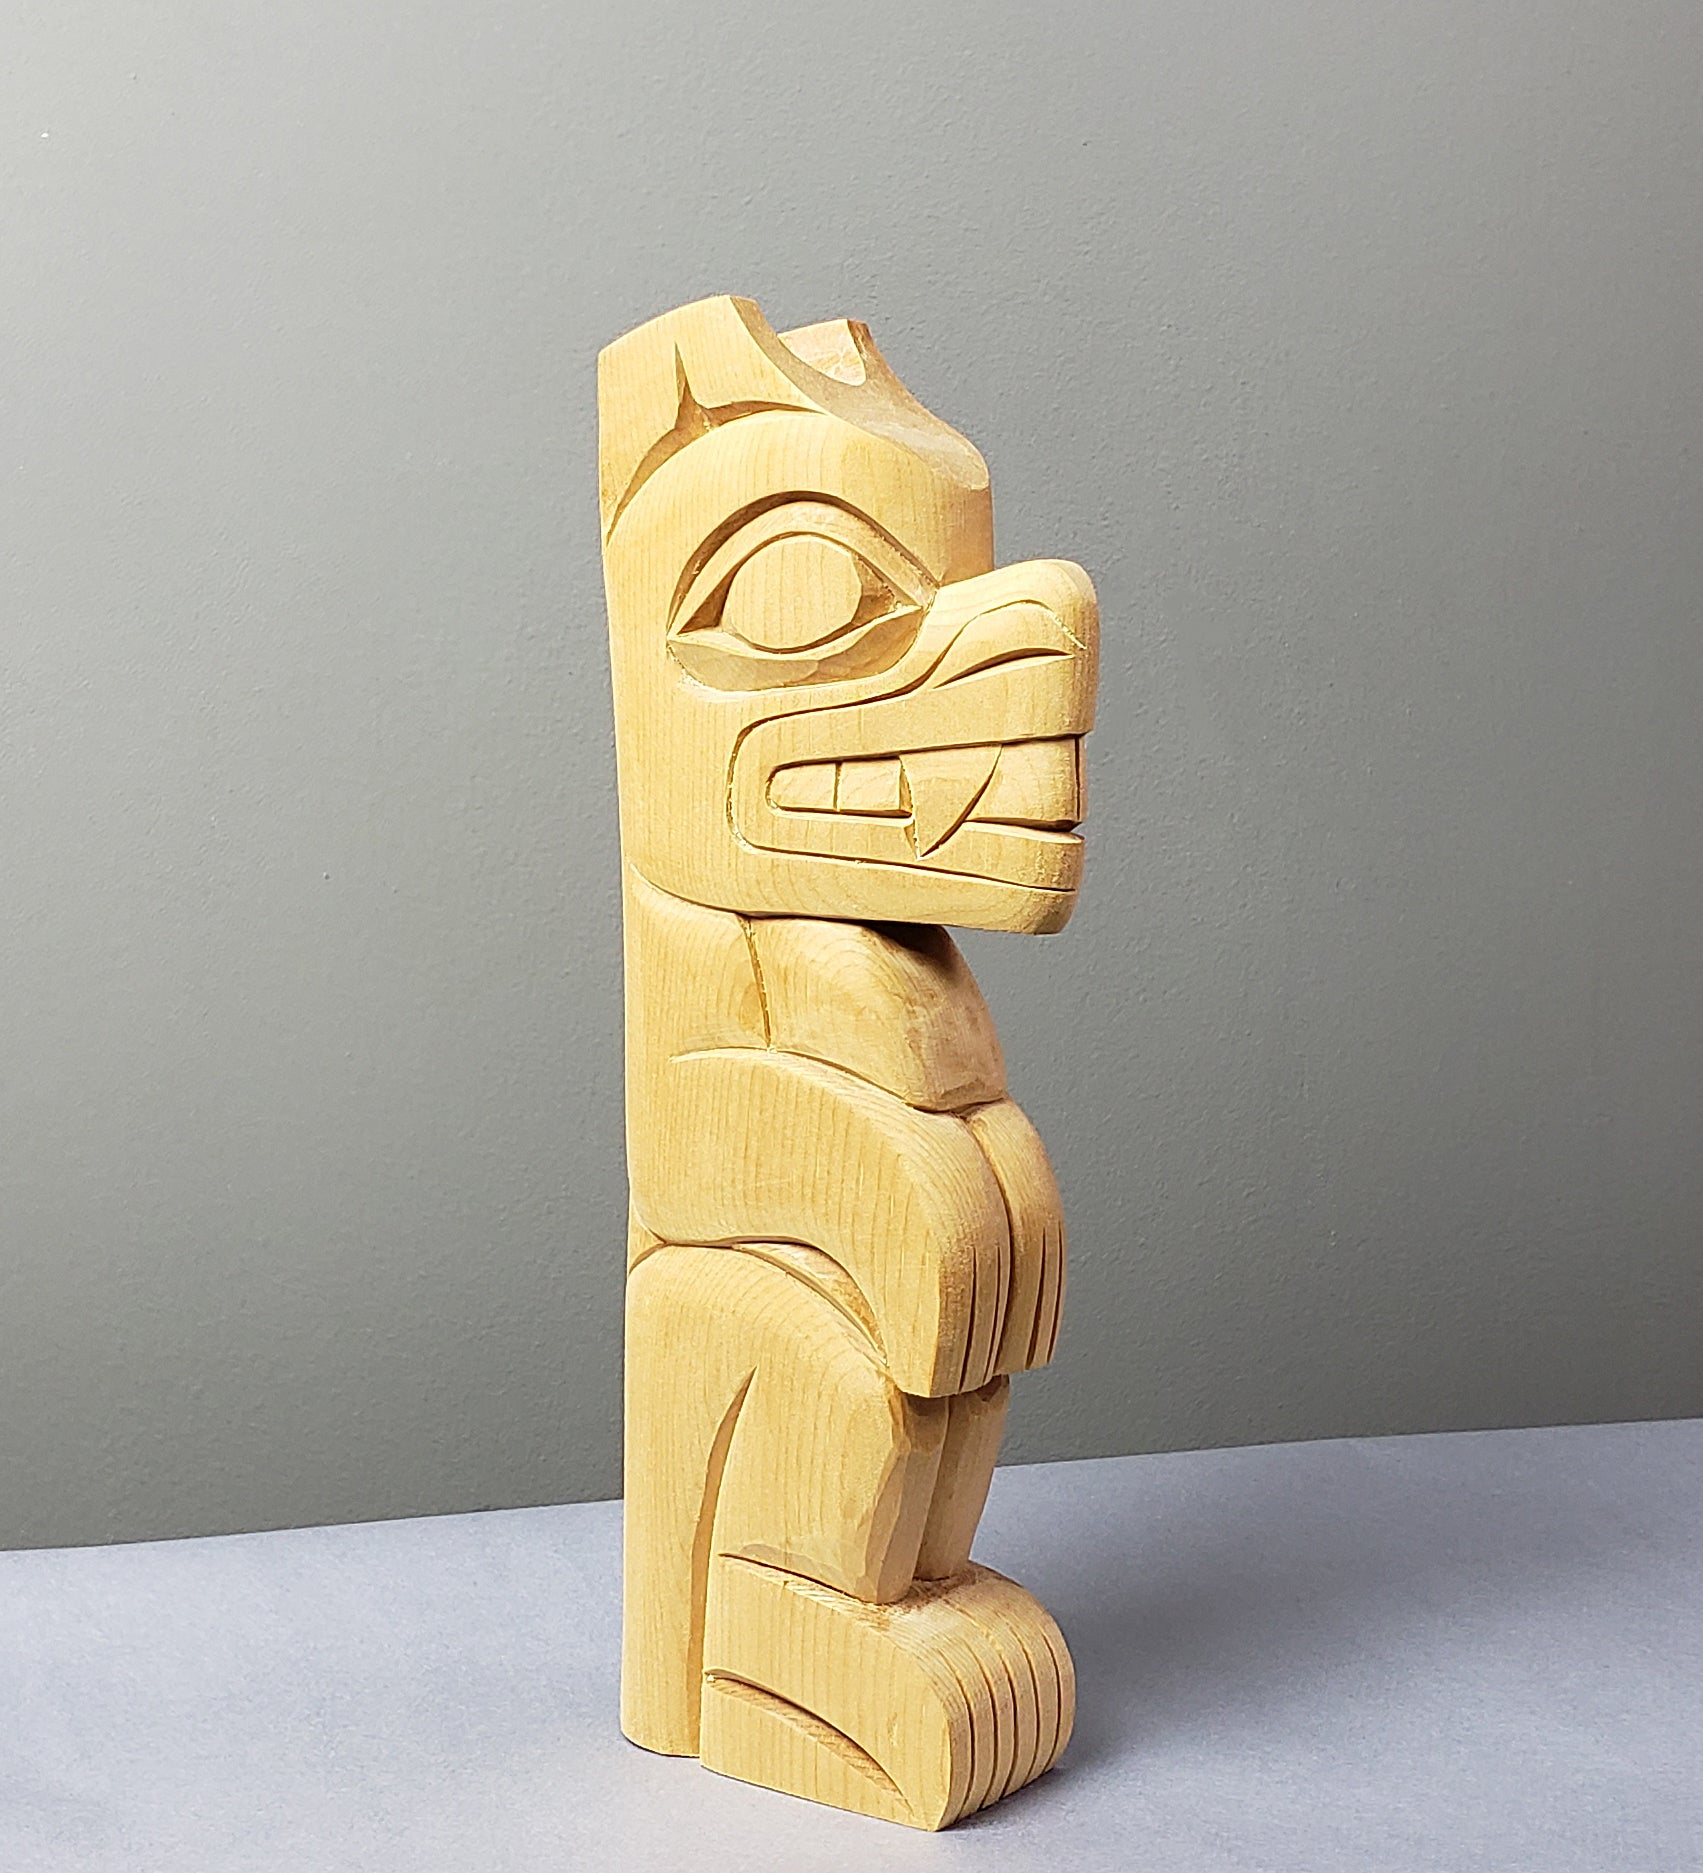 Bear - Yellow Cedar Sculpture